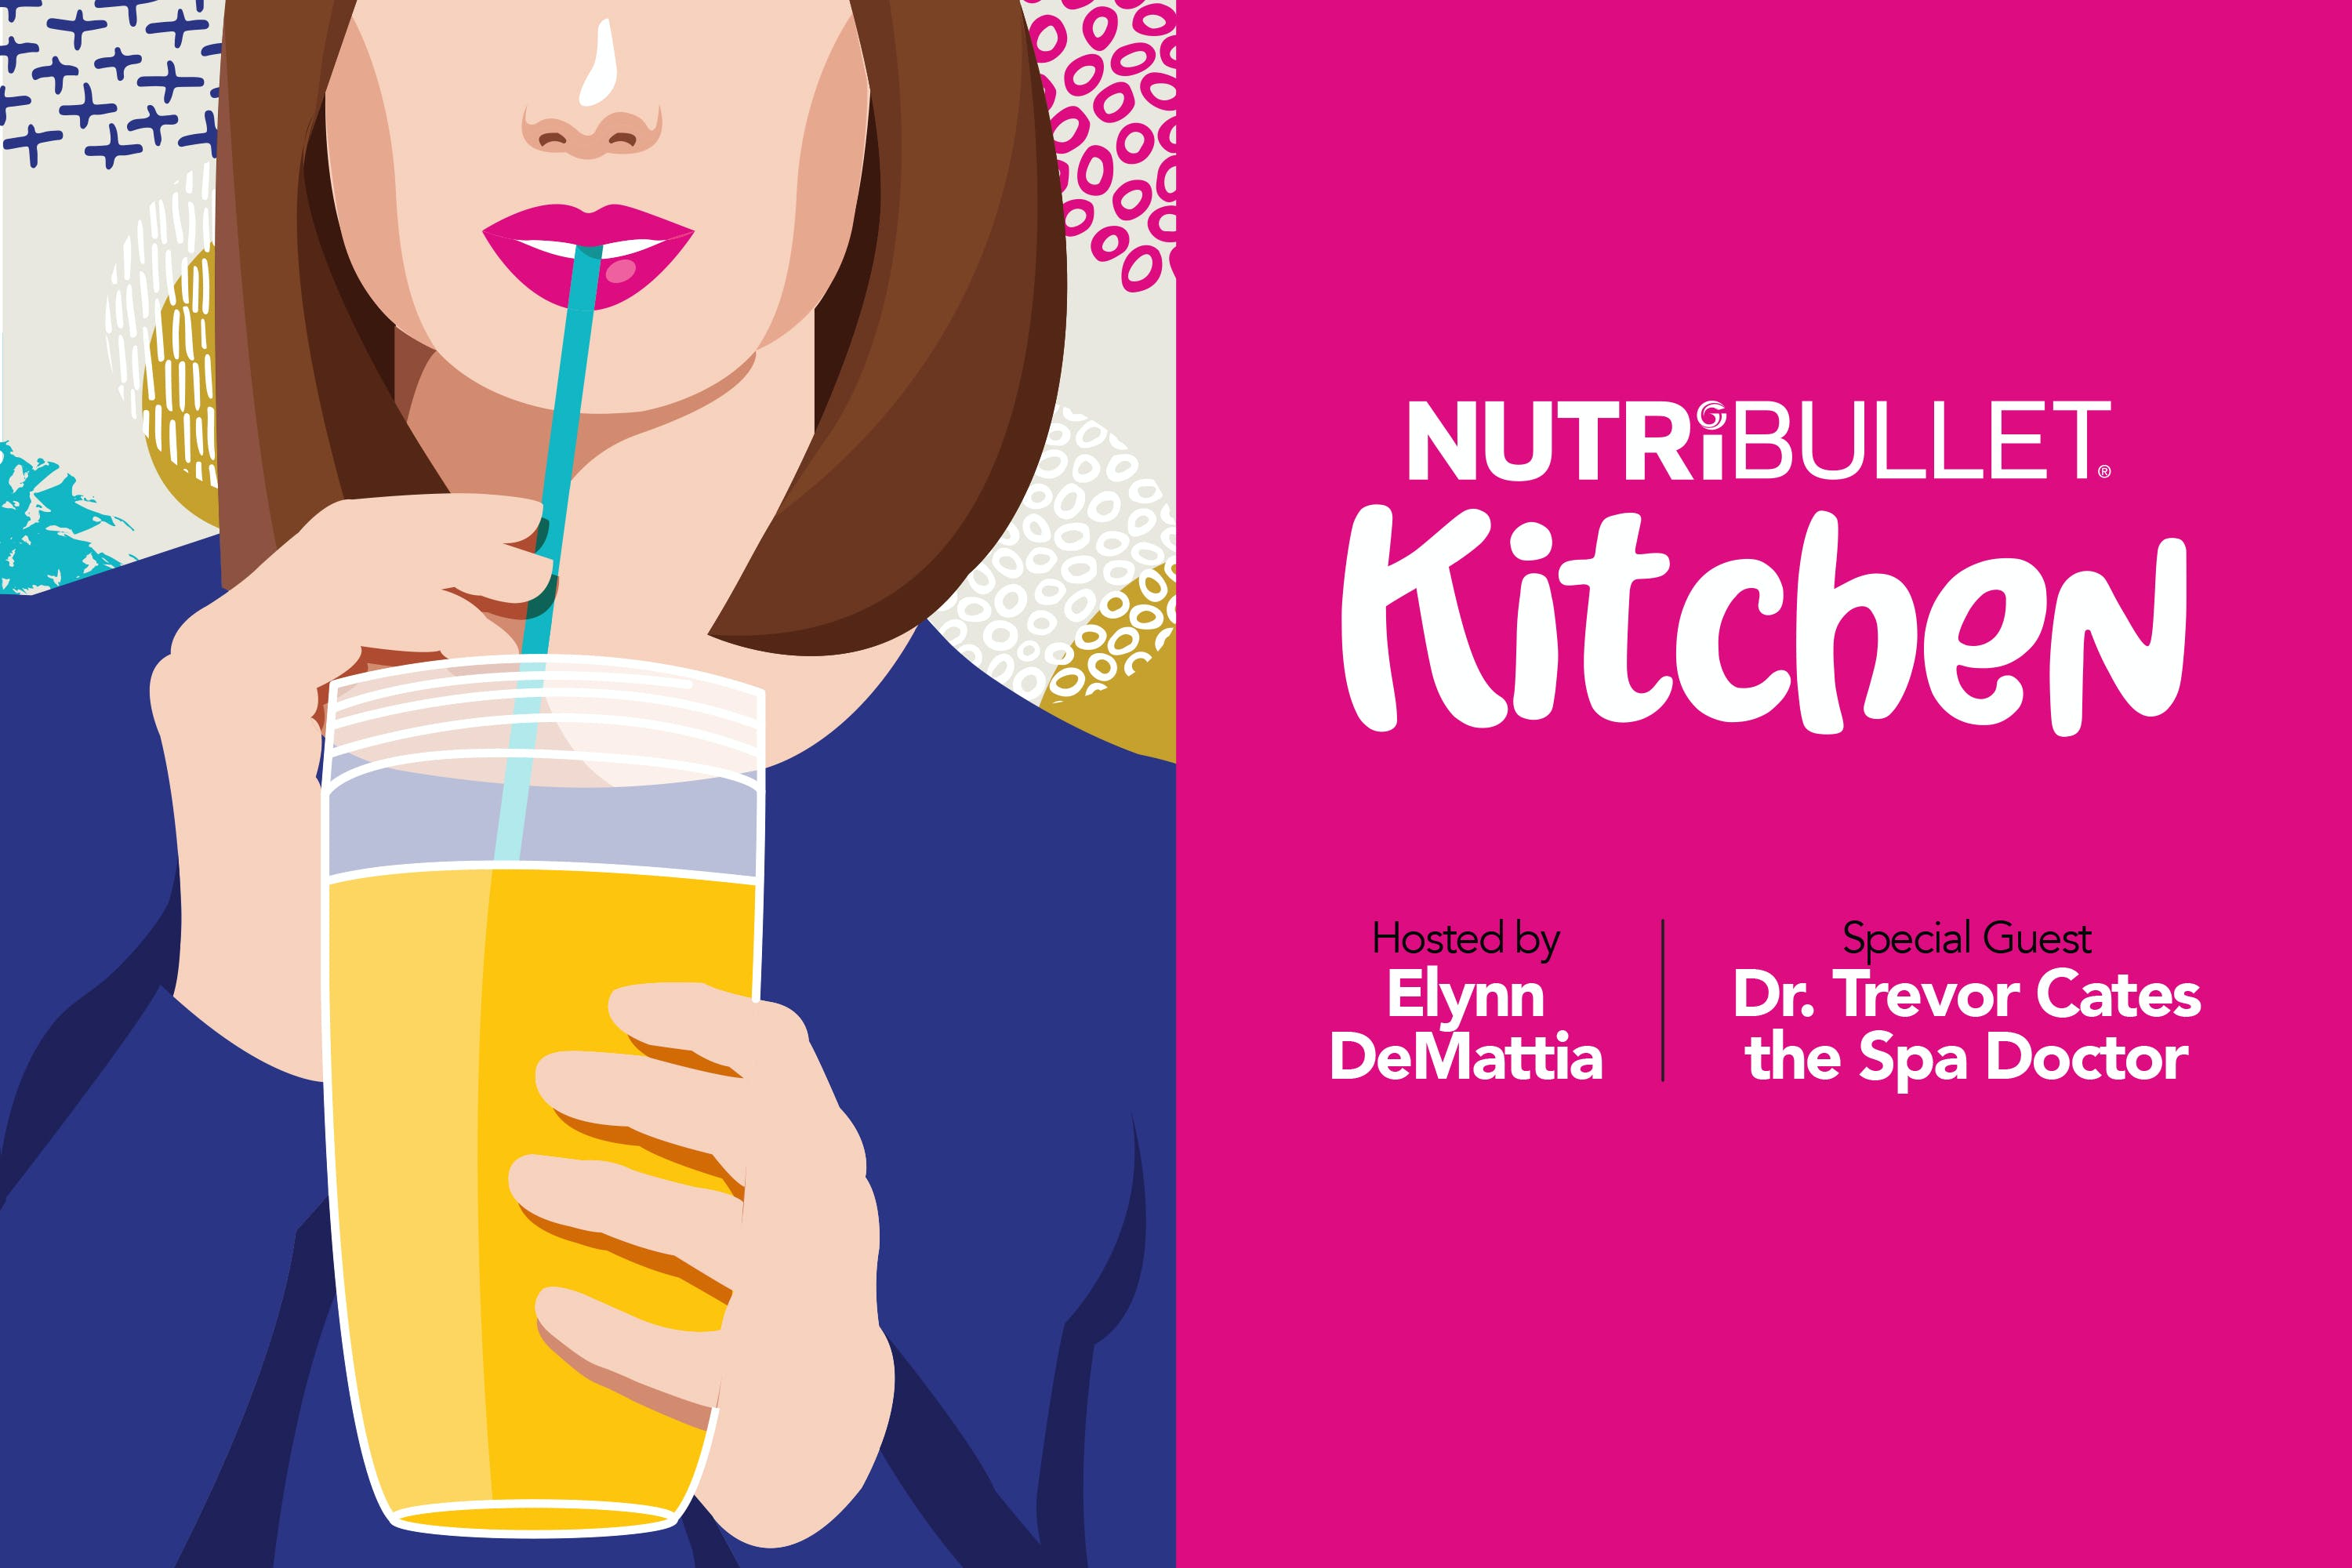 NutriBullet Kitchen Podcast Episode 3 Interview with Dr. Trevor Cates